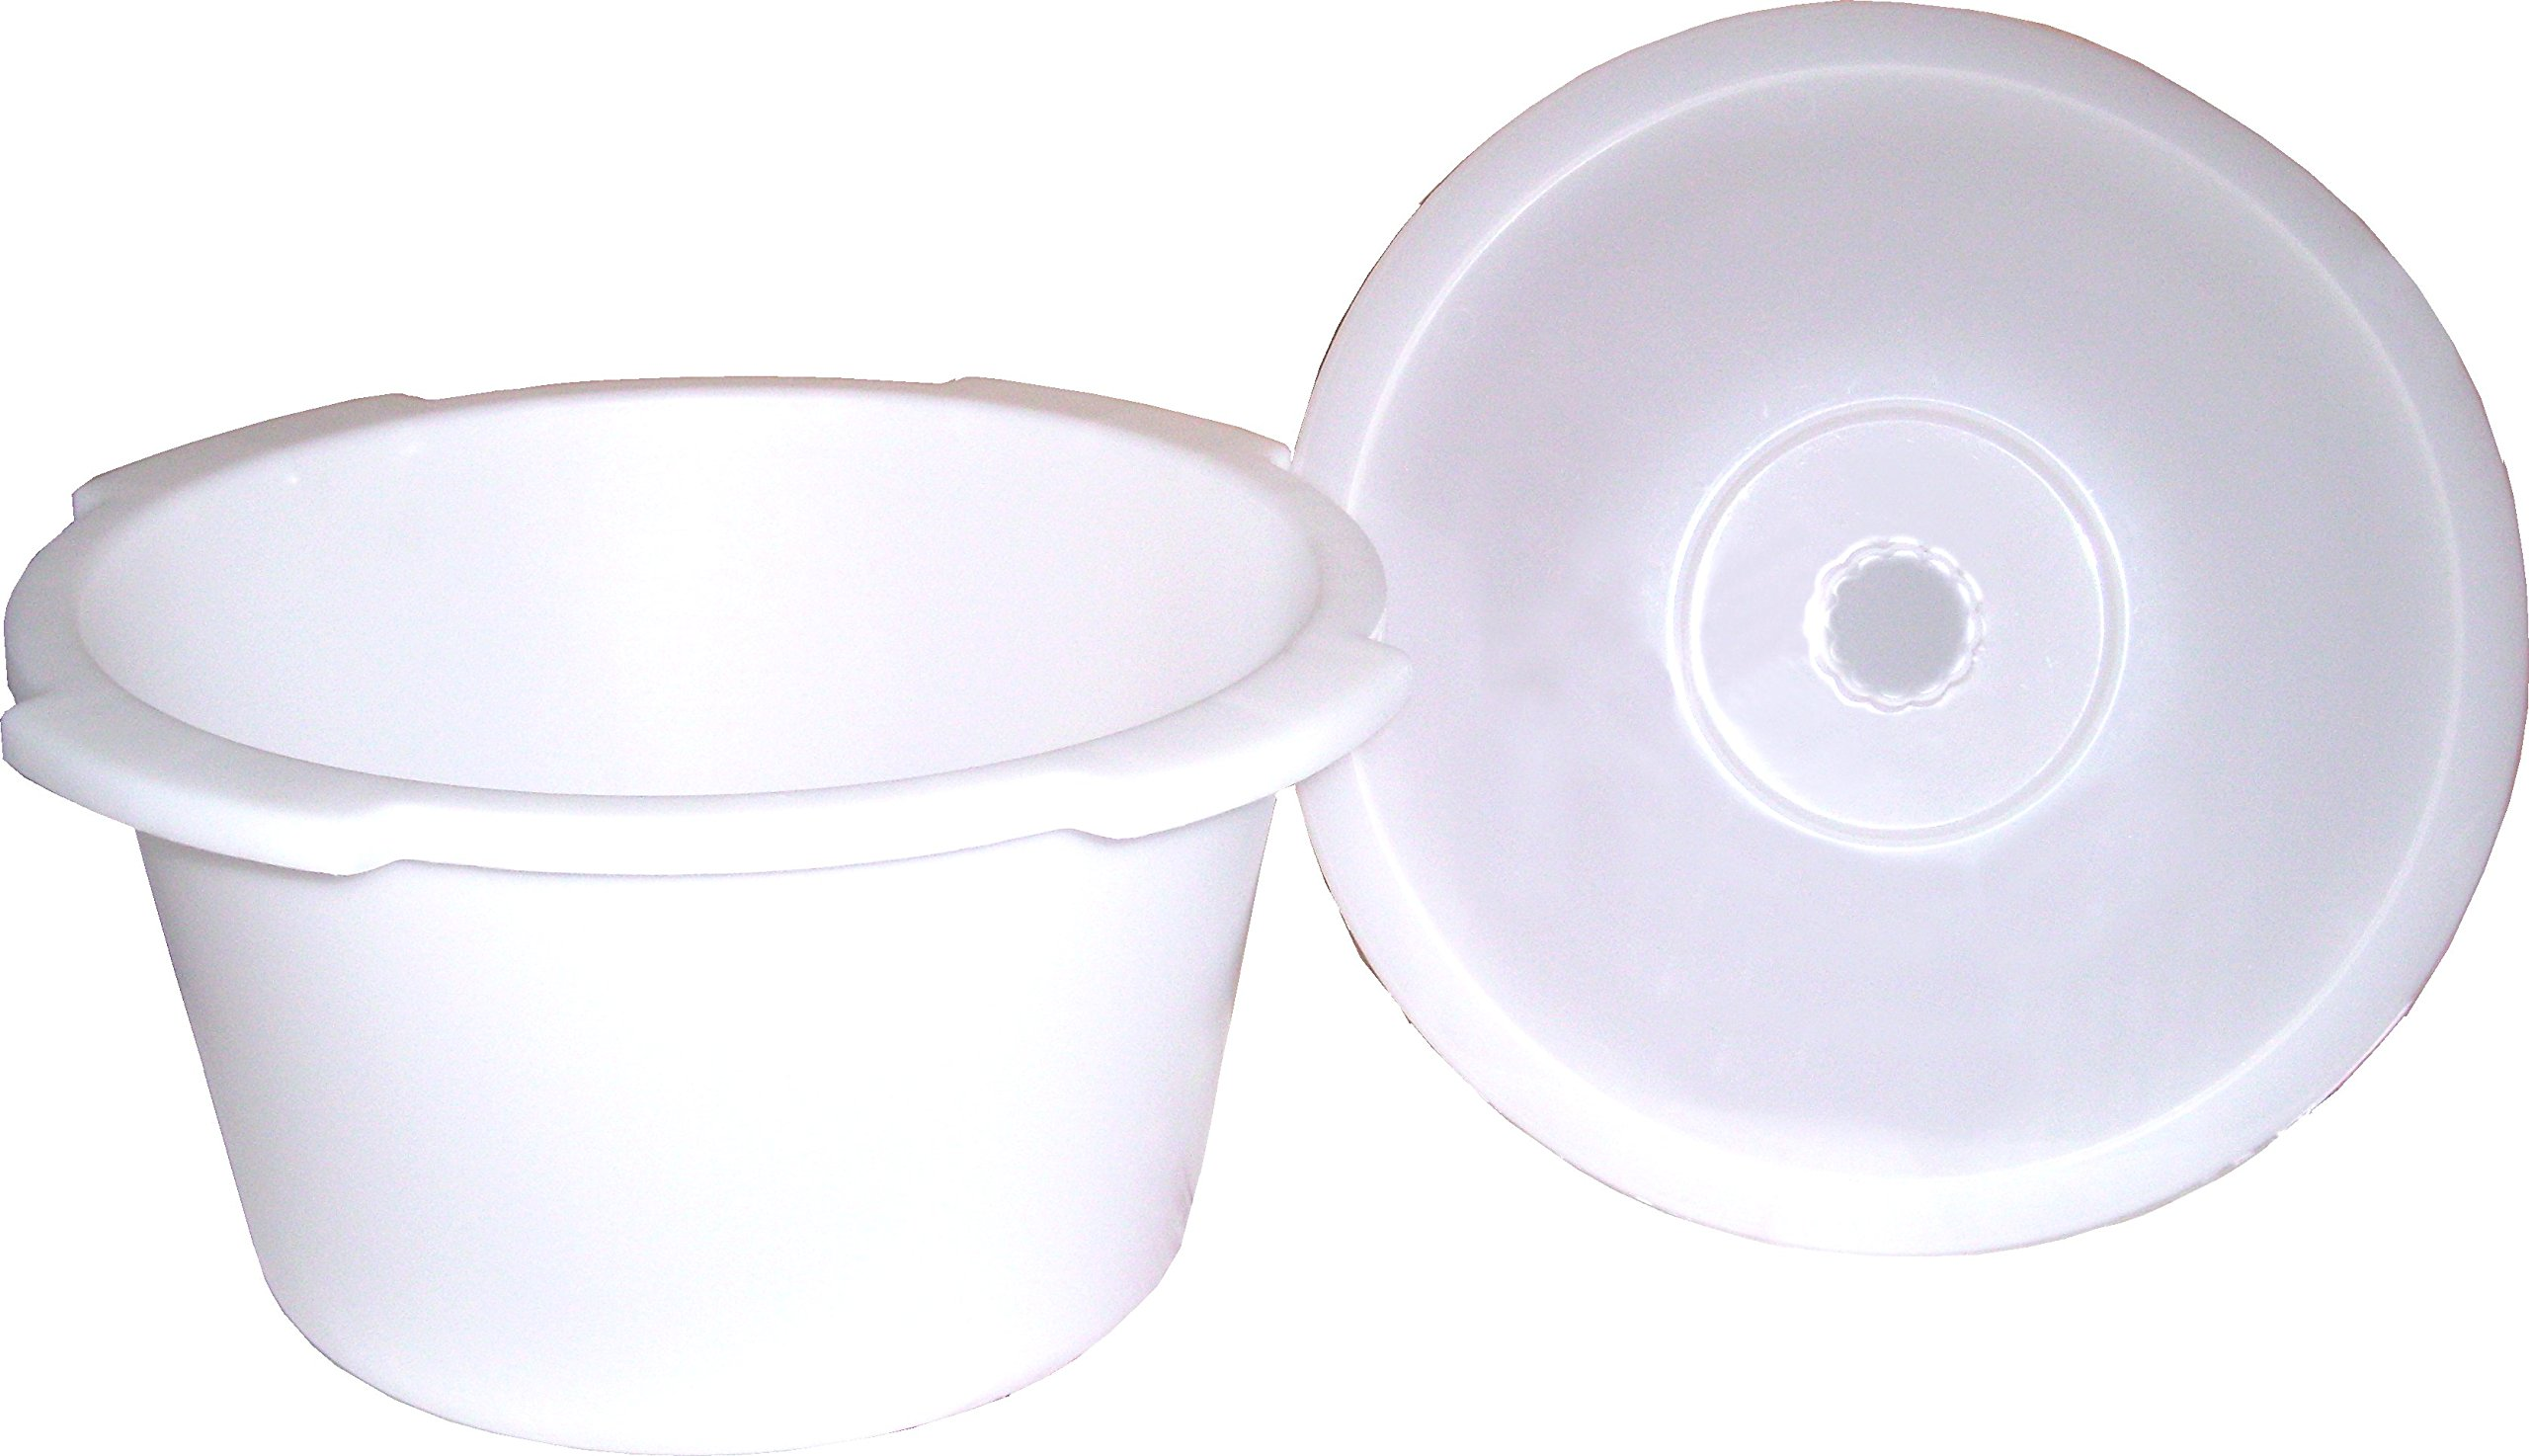 ConvaQuip 1500PC Universal Commode Pail Short